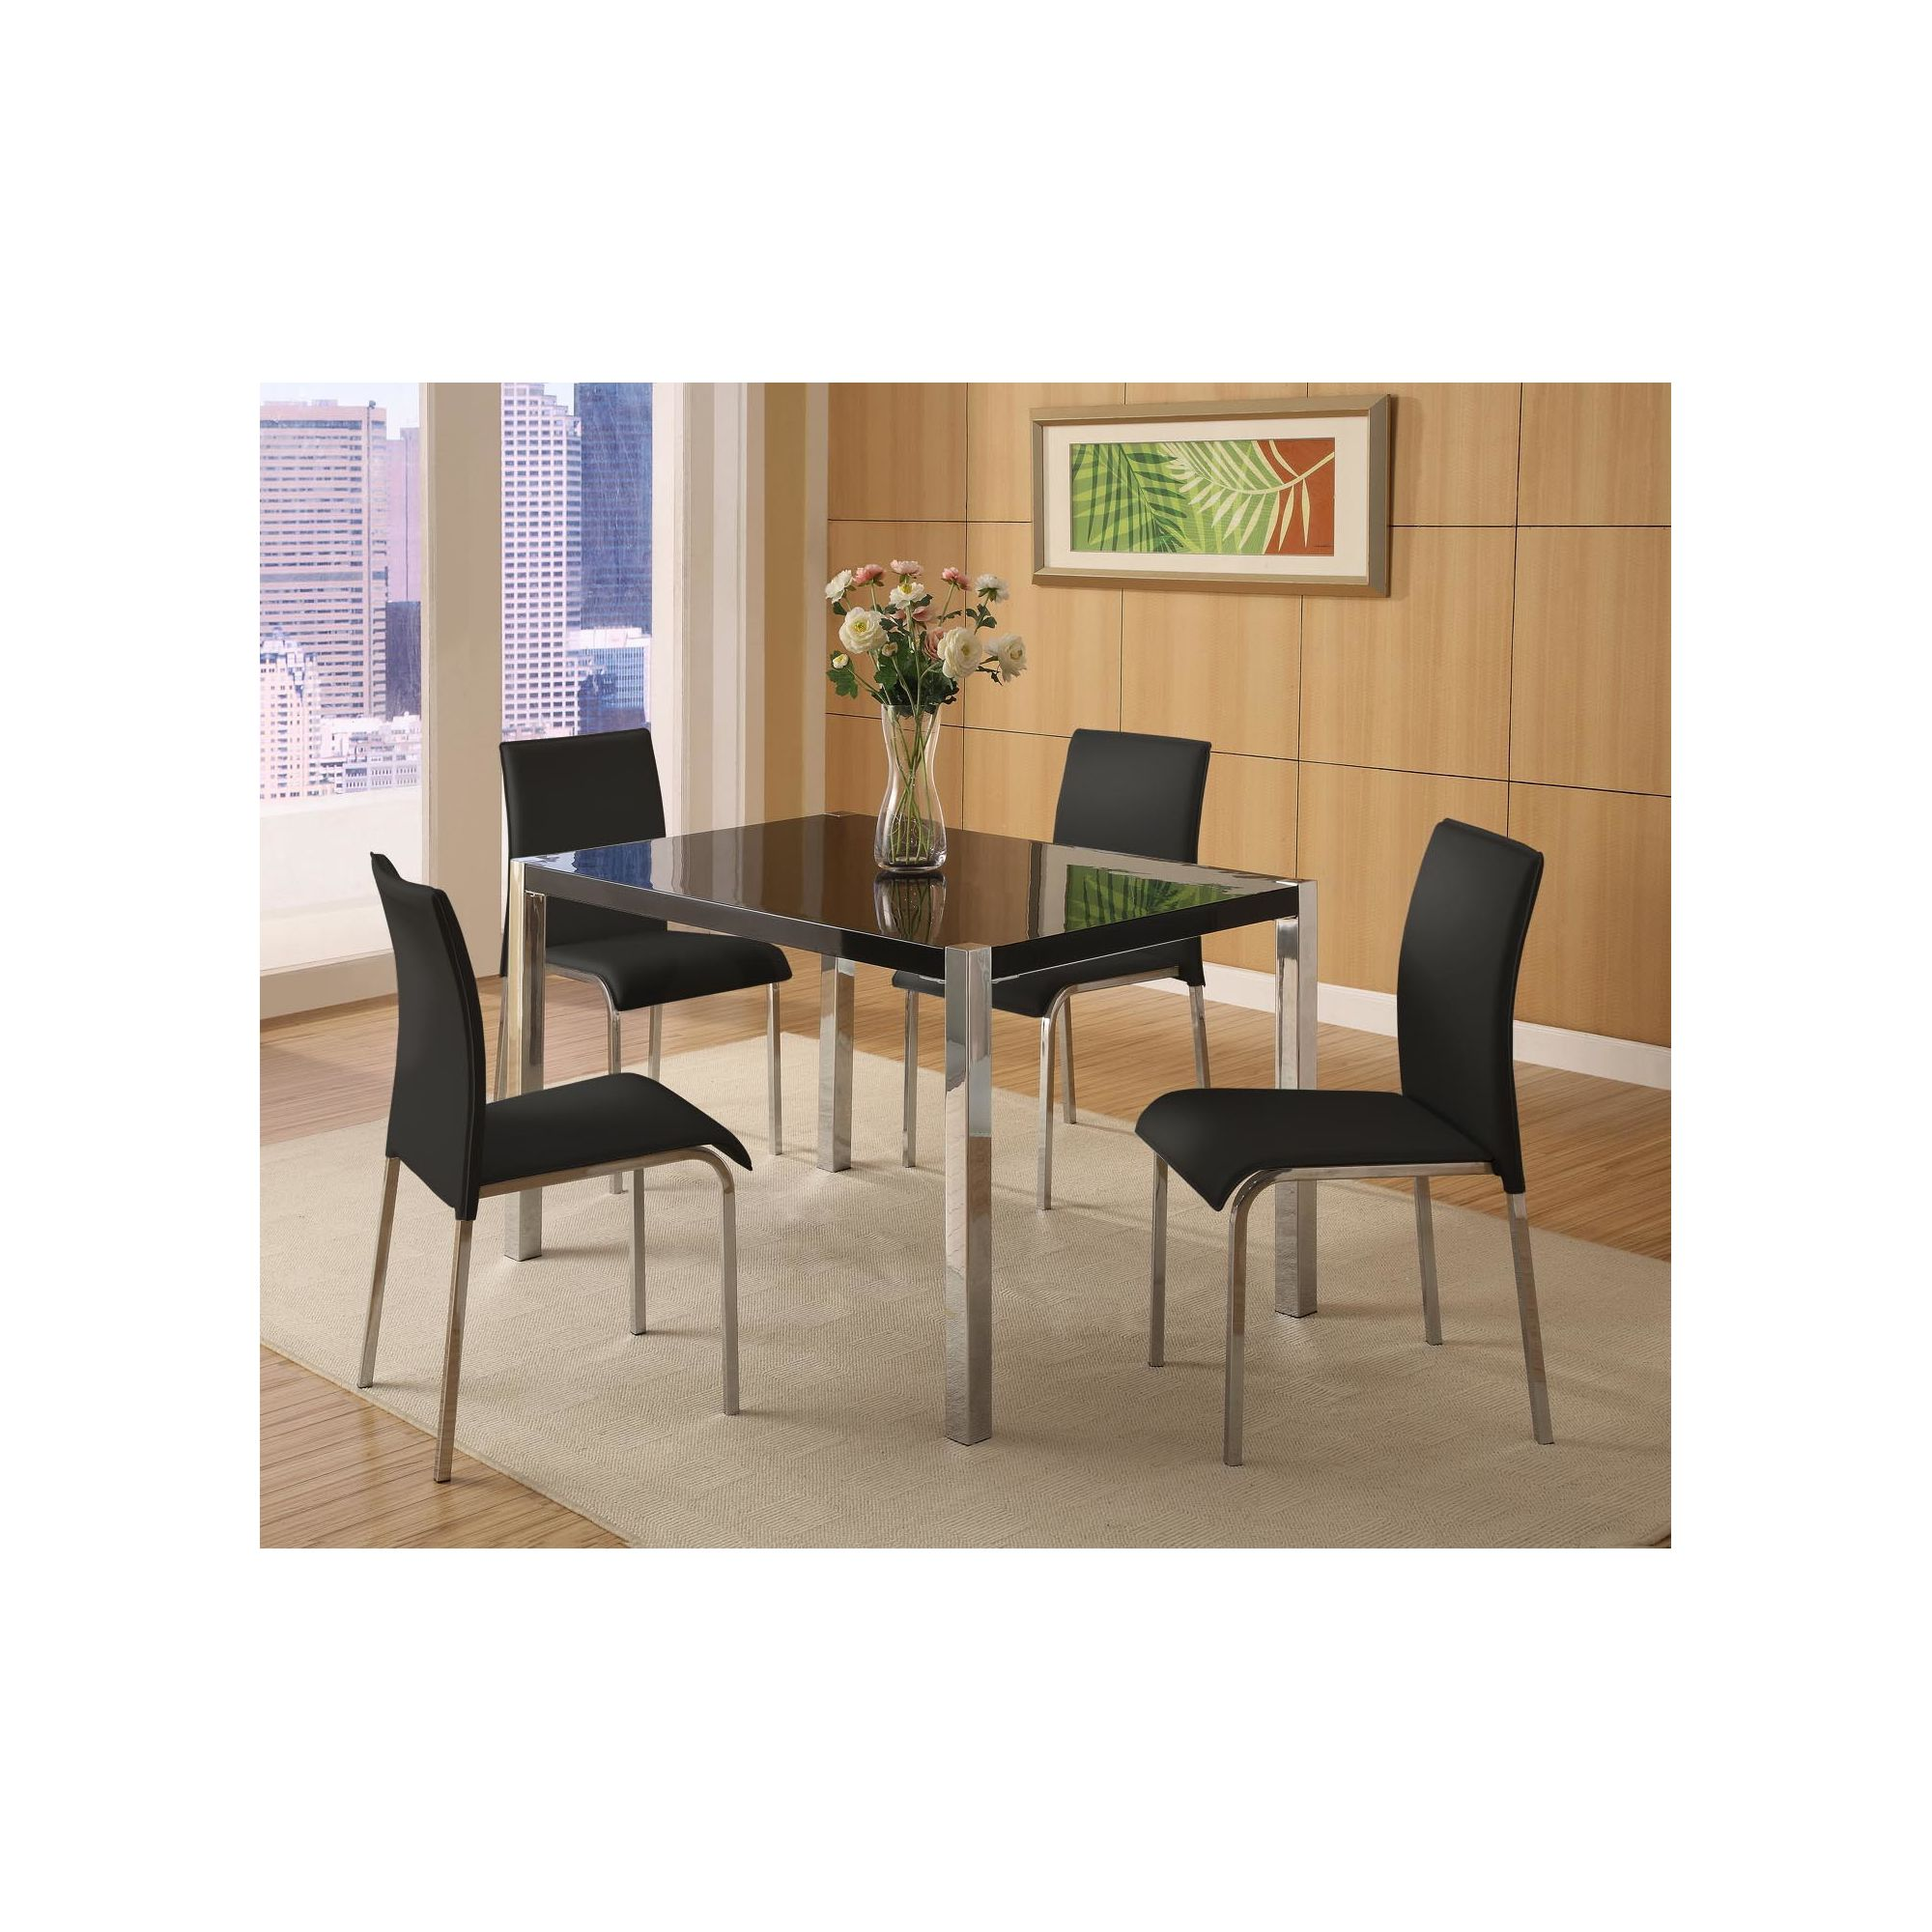 Home Essence Boston 5 Piece Dining Set in Black at Tesco Direct